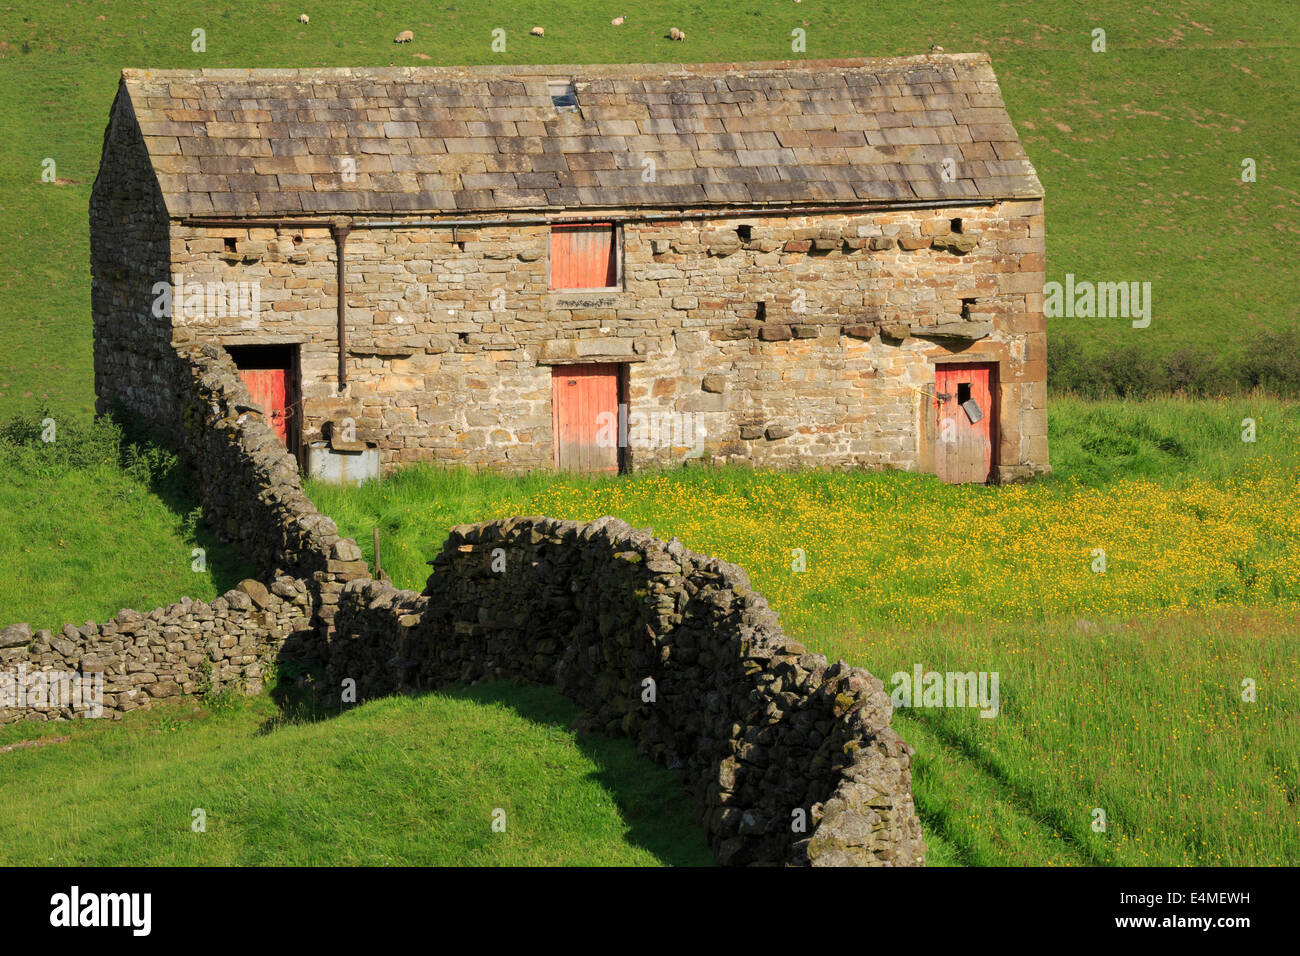 Stone barn with red doors, Swaledale, Yorkshire Dales - Stock Image